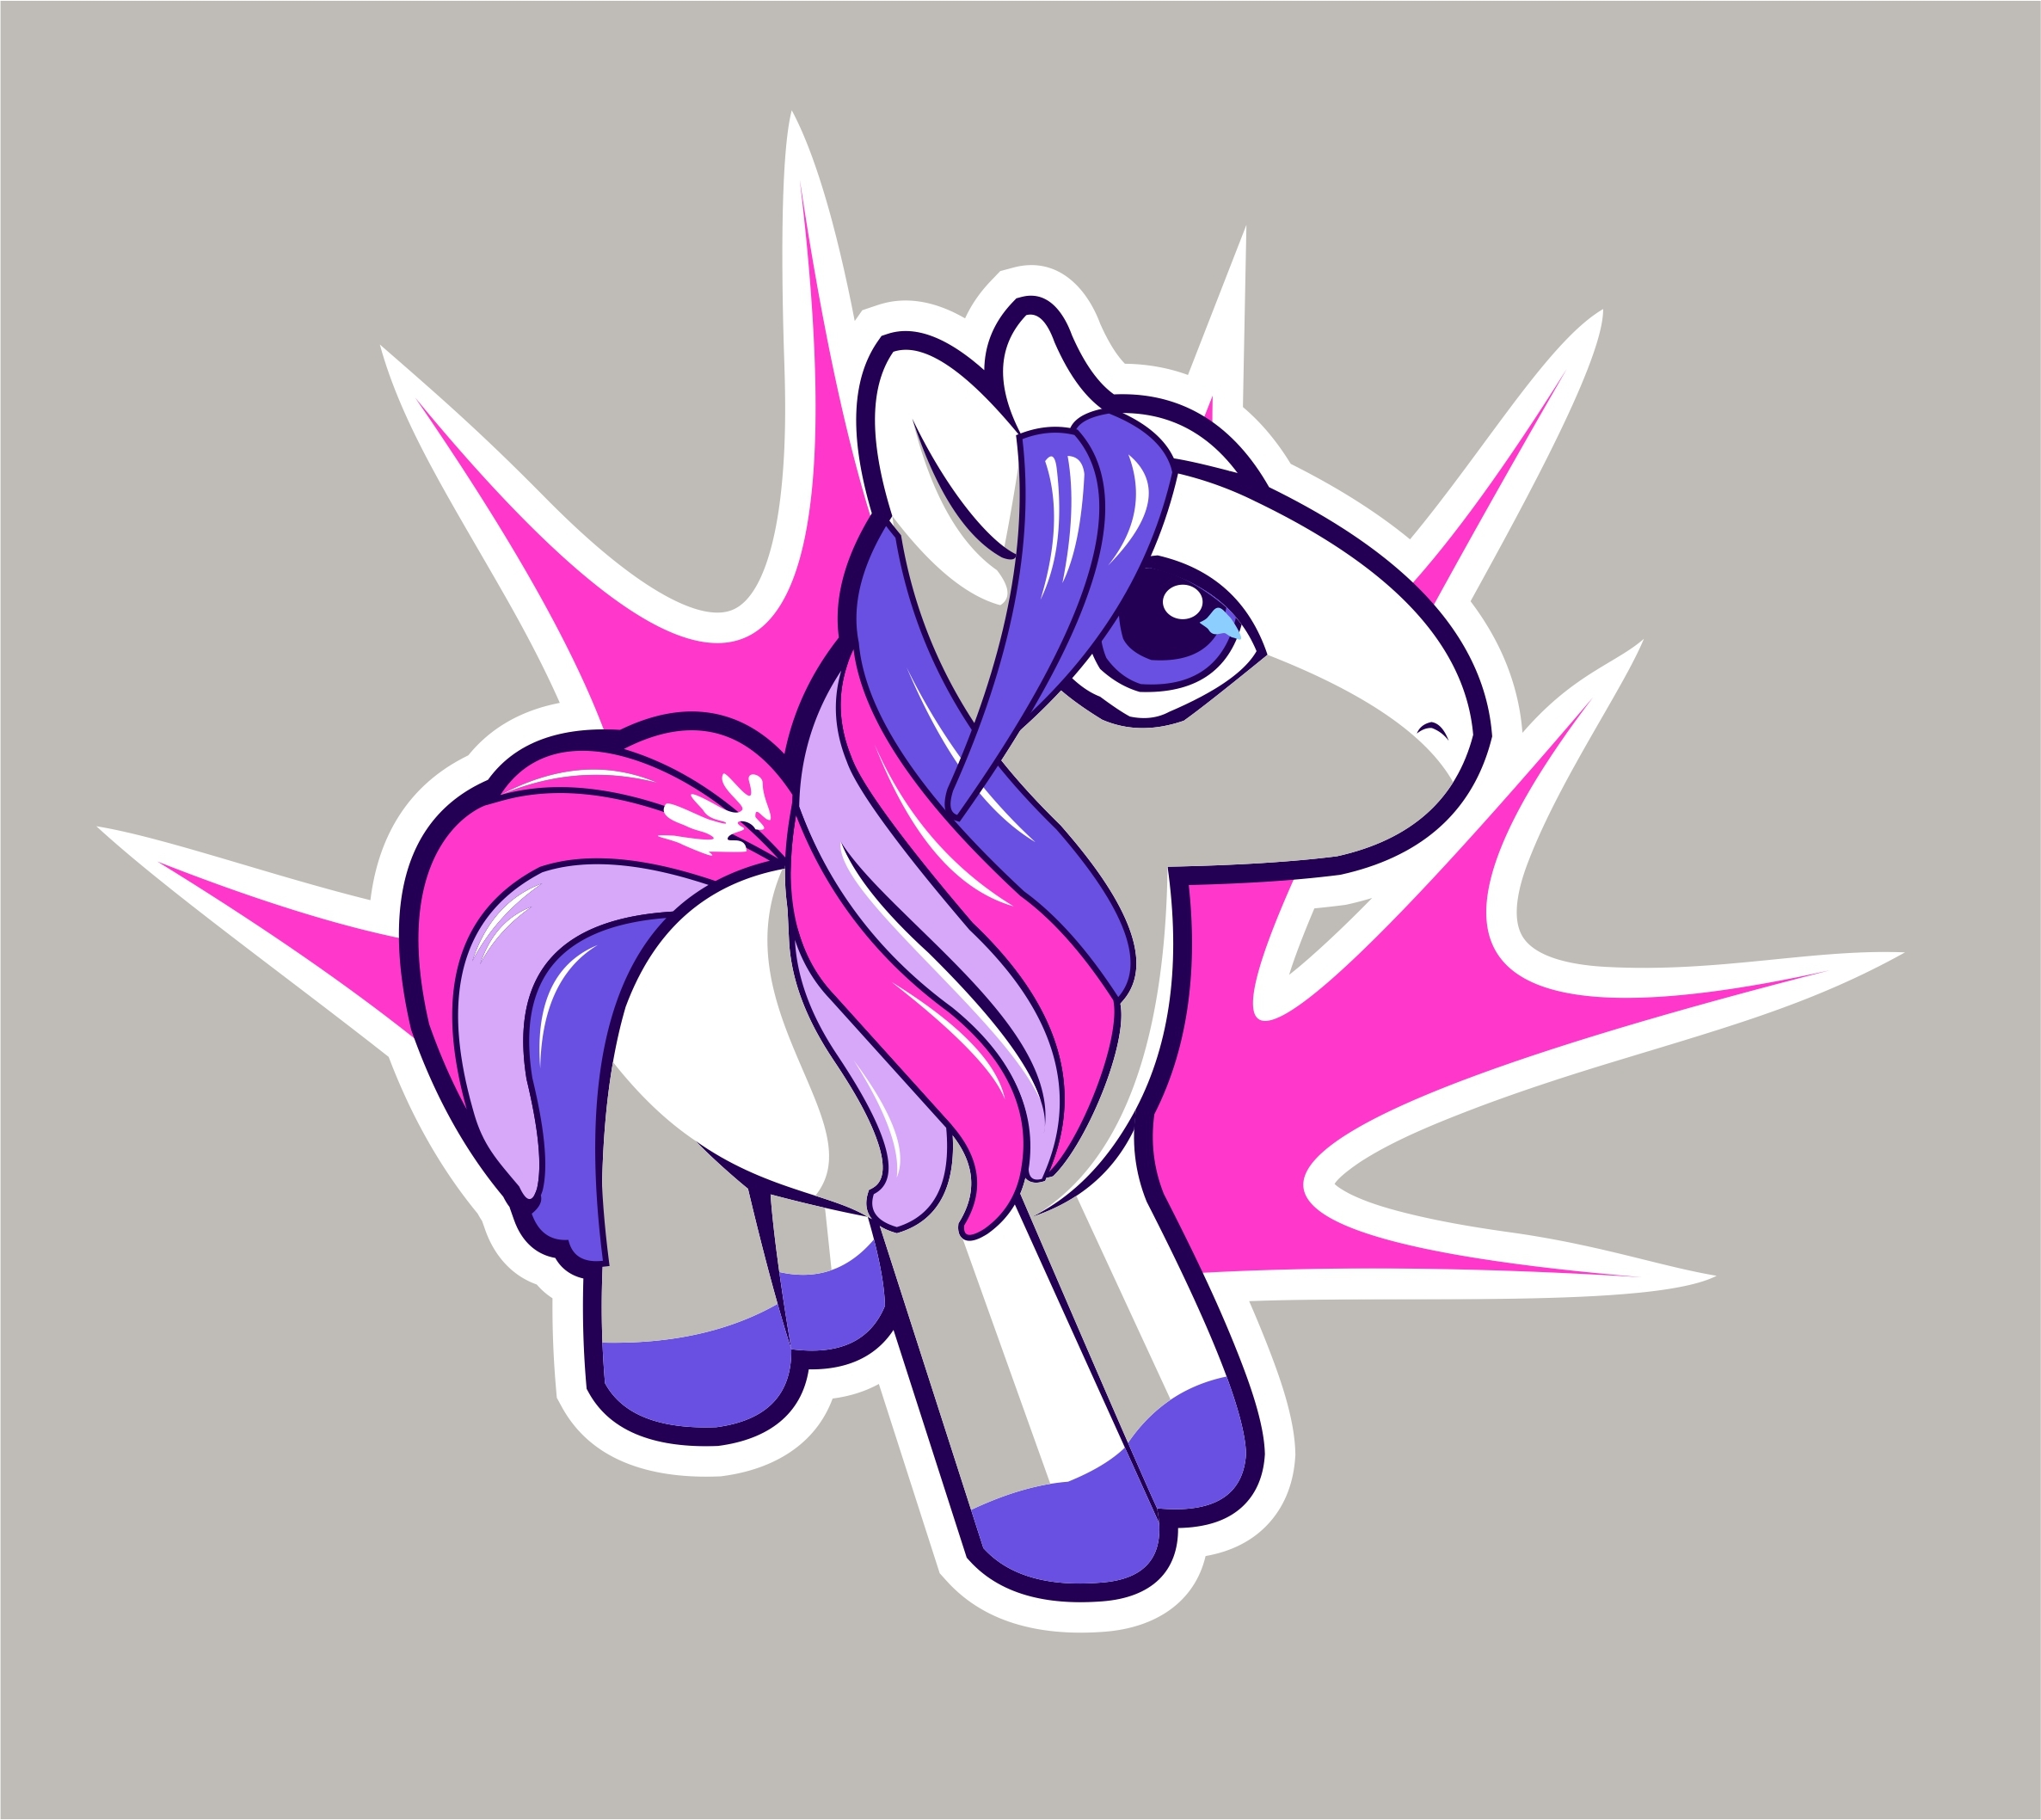 Twitter turns to UK to ?build strength? and acquires London AI business Magic Pony